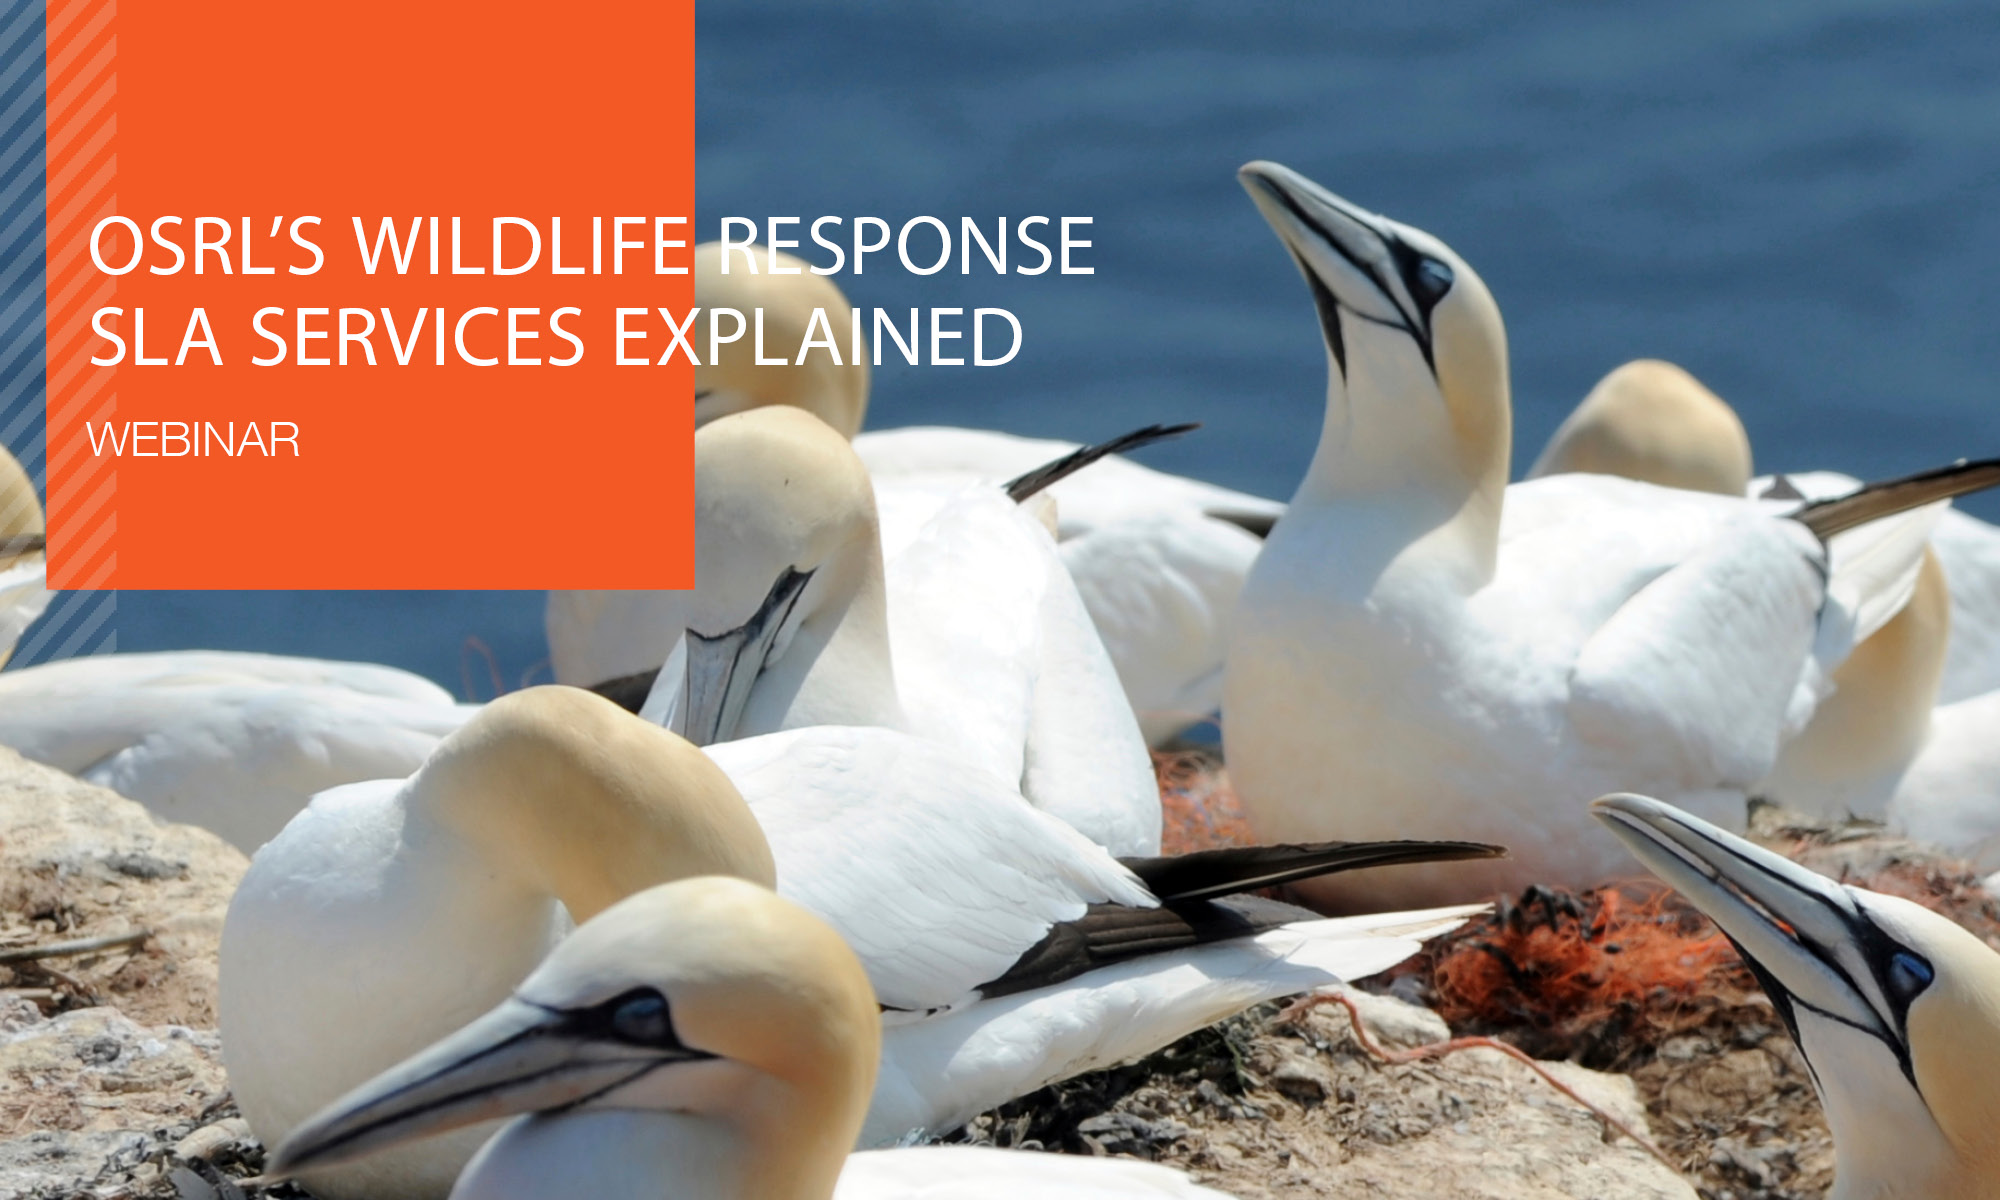 Recorded Webinar: OSRL's Wildlife Response SLA Services Explained